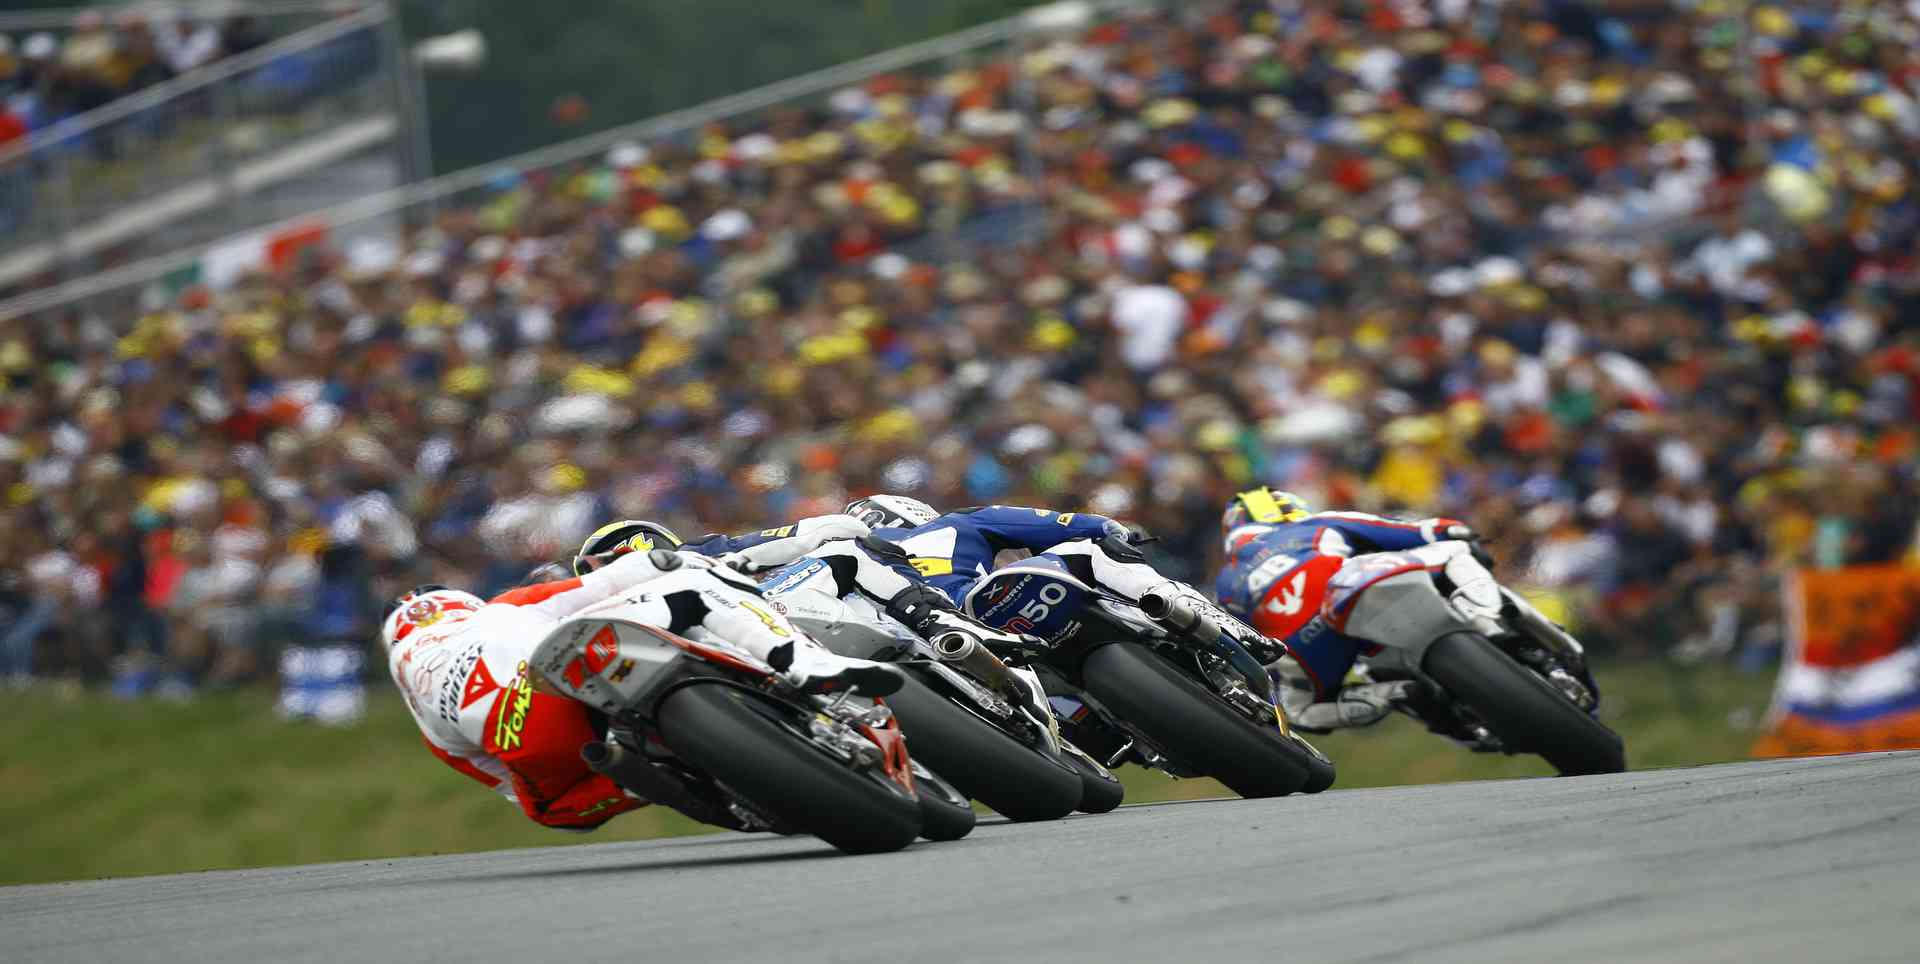 Superbike FIM World Championship